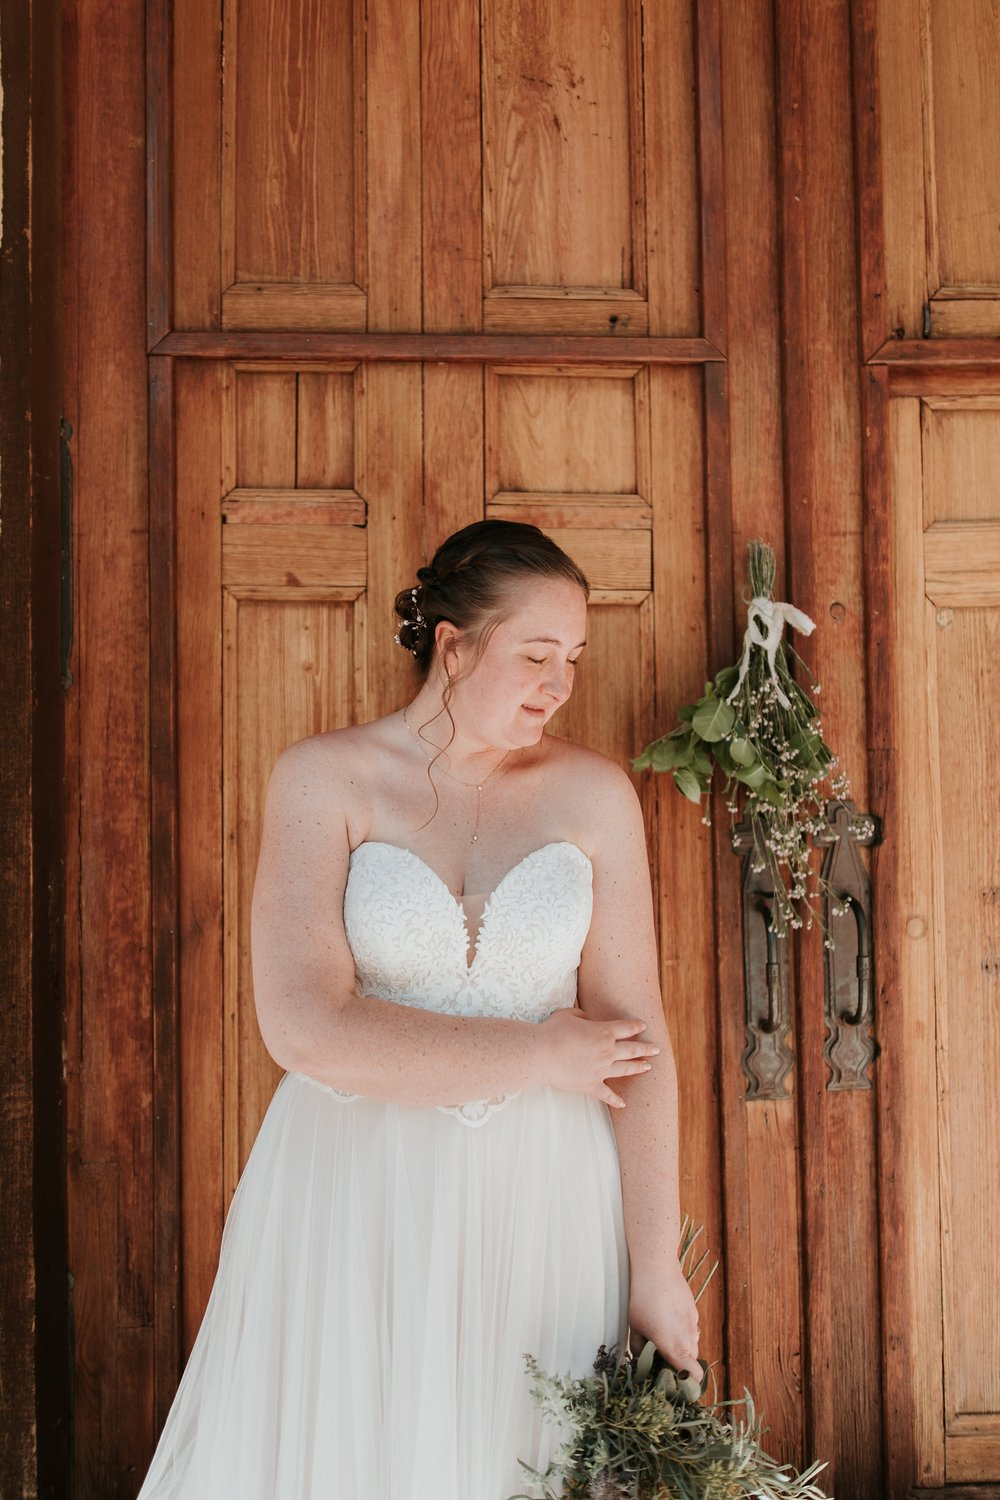 Alicia+lucia+photography+-+albuquerque+wedding+photographer+-+santa+fe+wedding+photography+-+new+mexico+wedding+photographer+-+hacienda+dona+andrea+wedding+-+destination+wedding+-+new+york+couple_0020.jpg